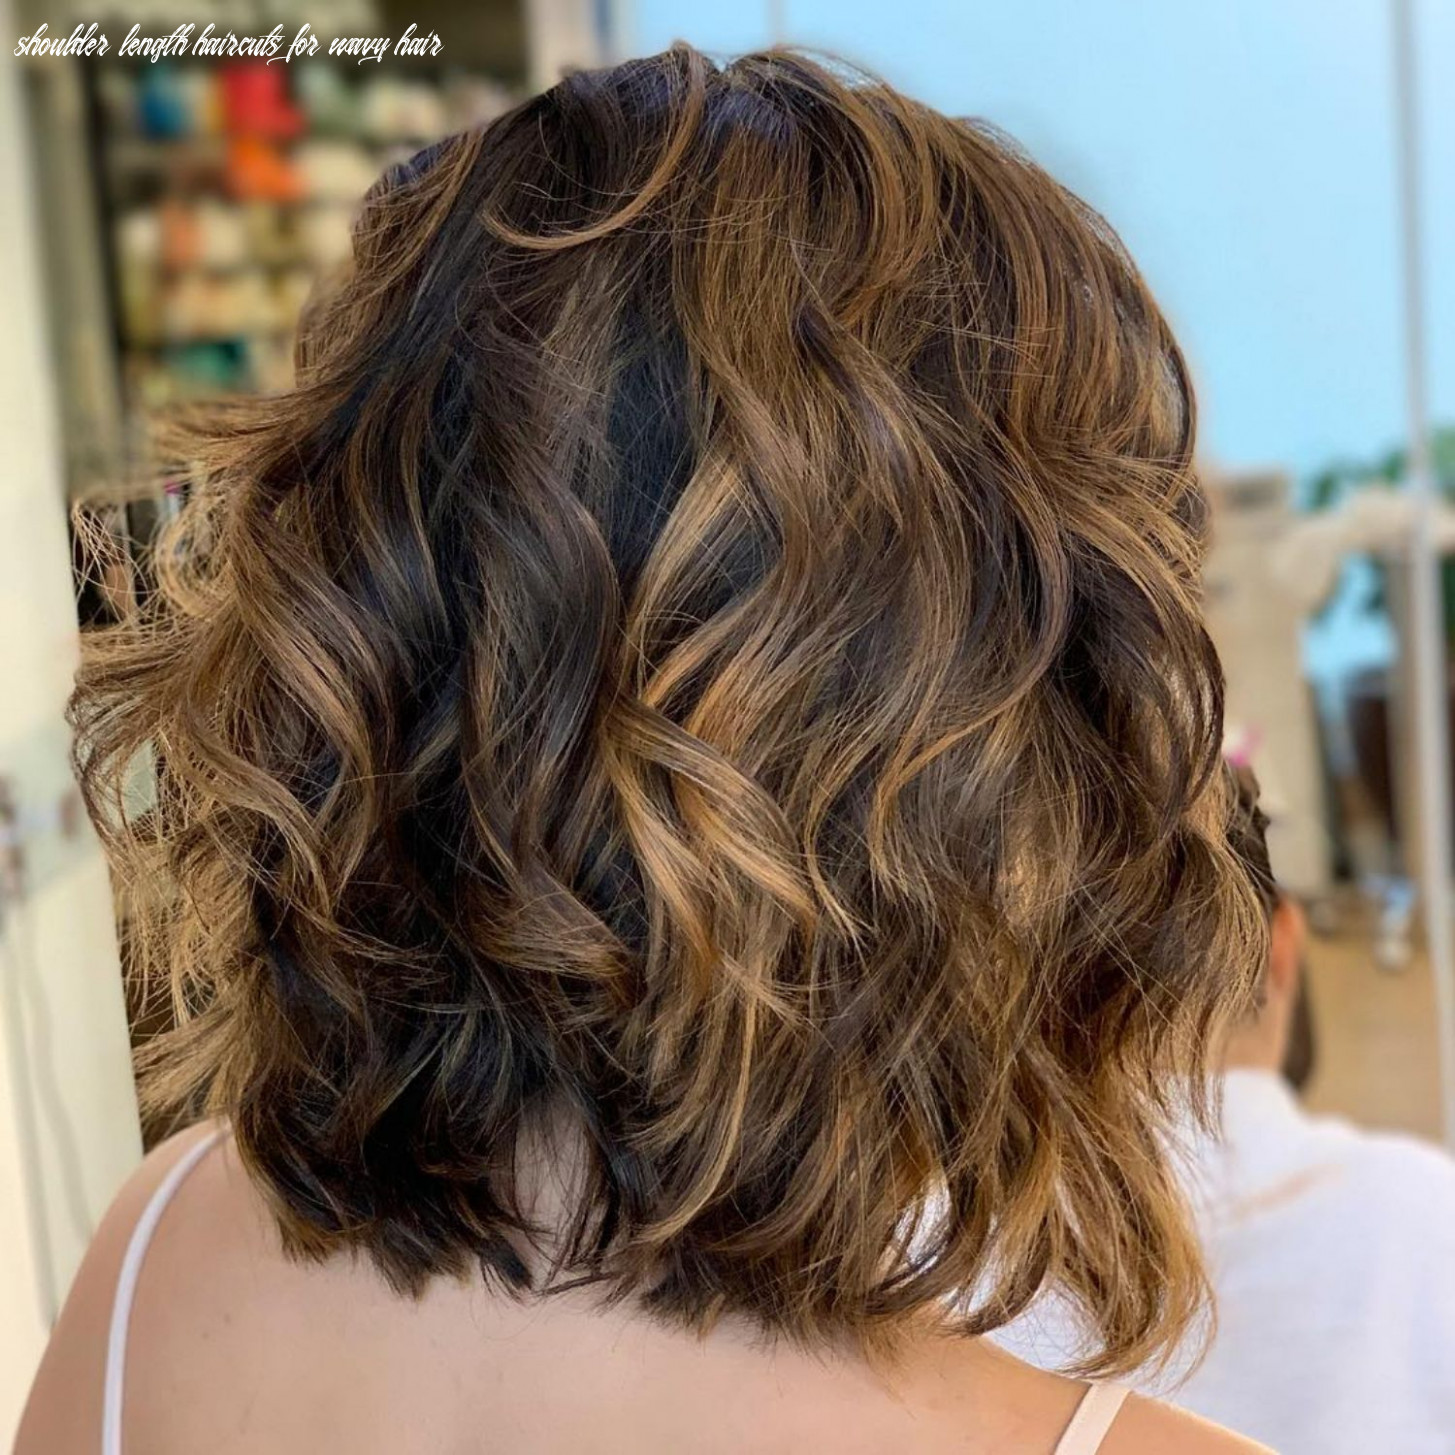 Pin on my style shoulder length haircuts for wavy hair